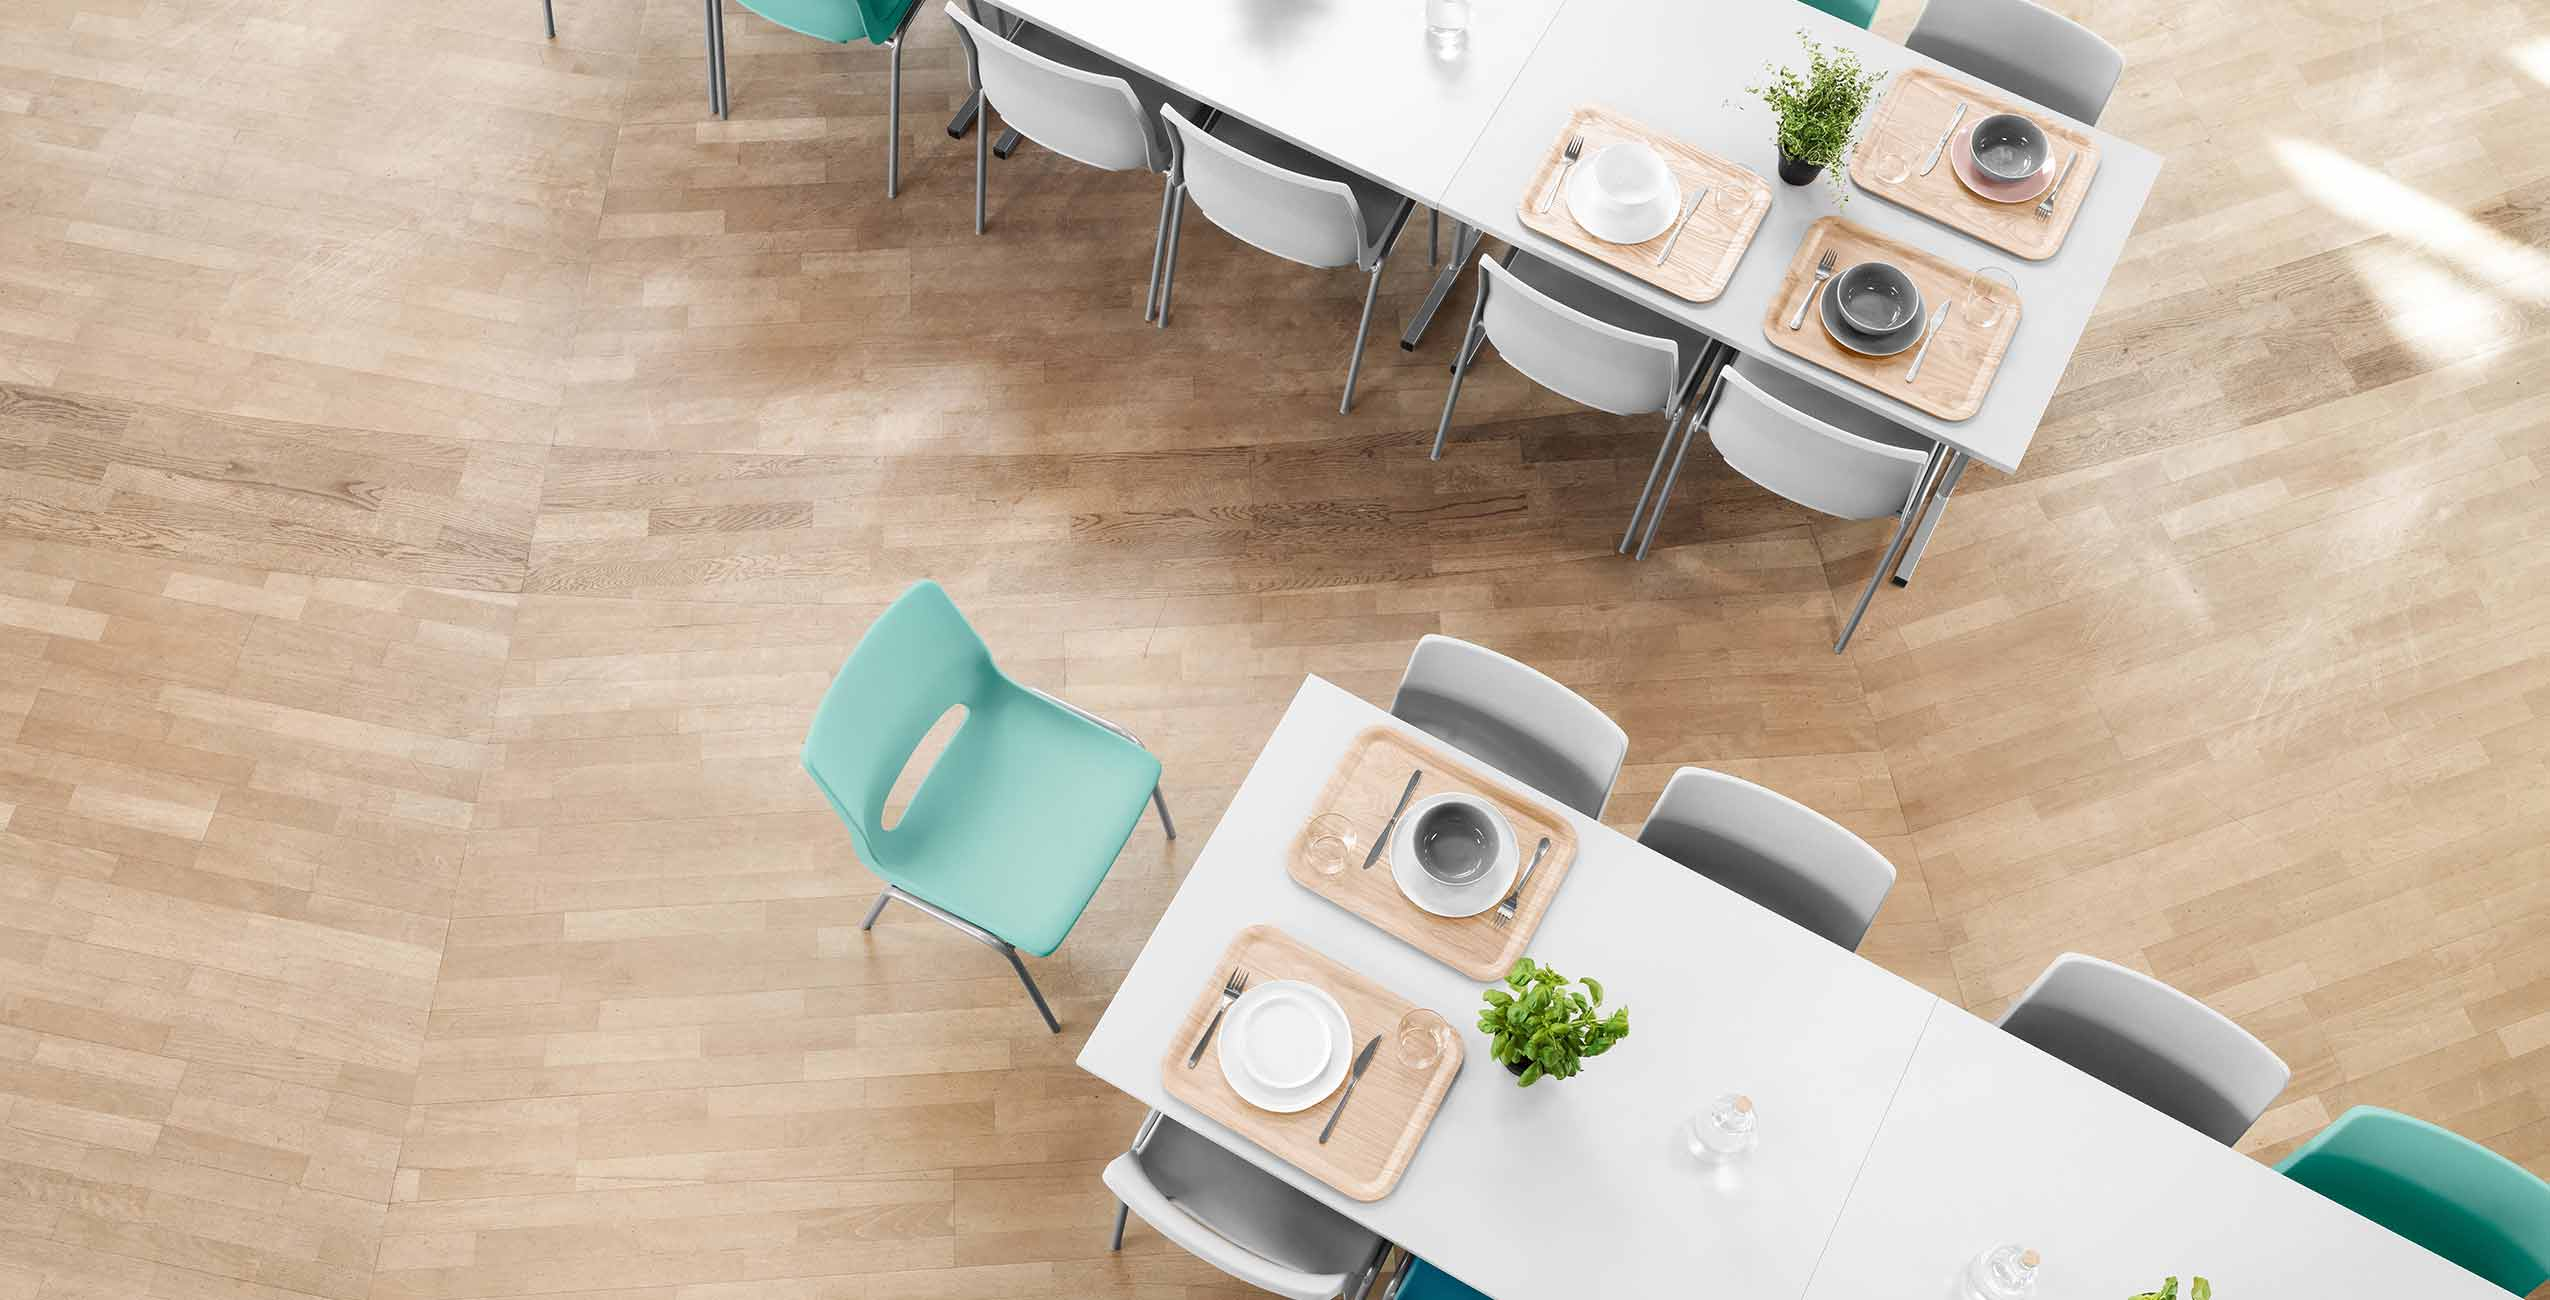 Chairs for cafeterias and canteens in school